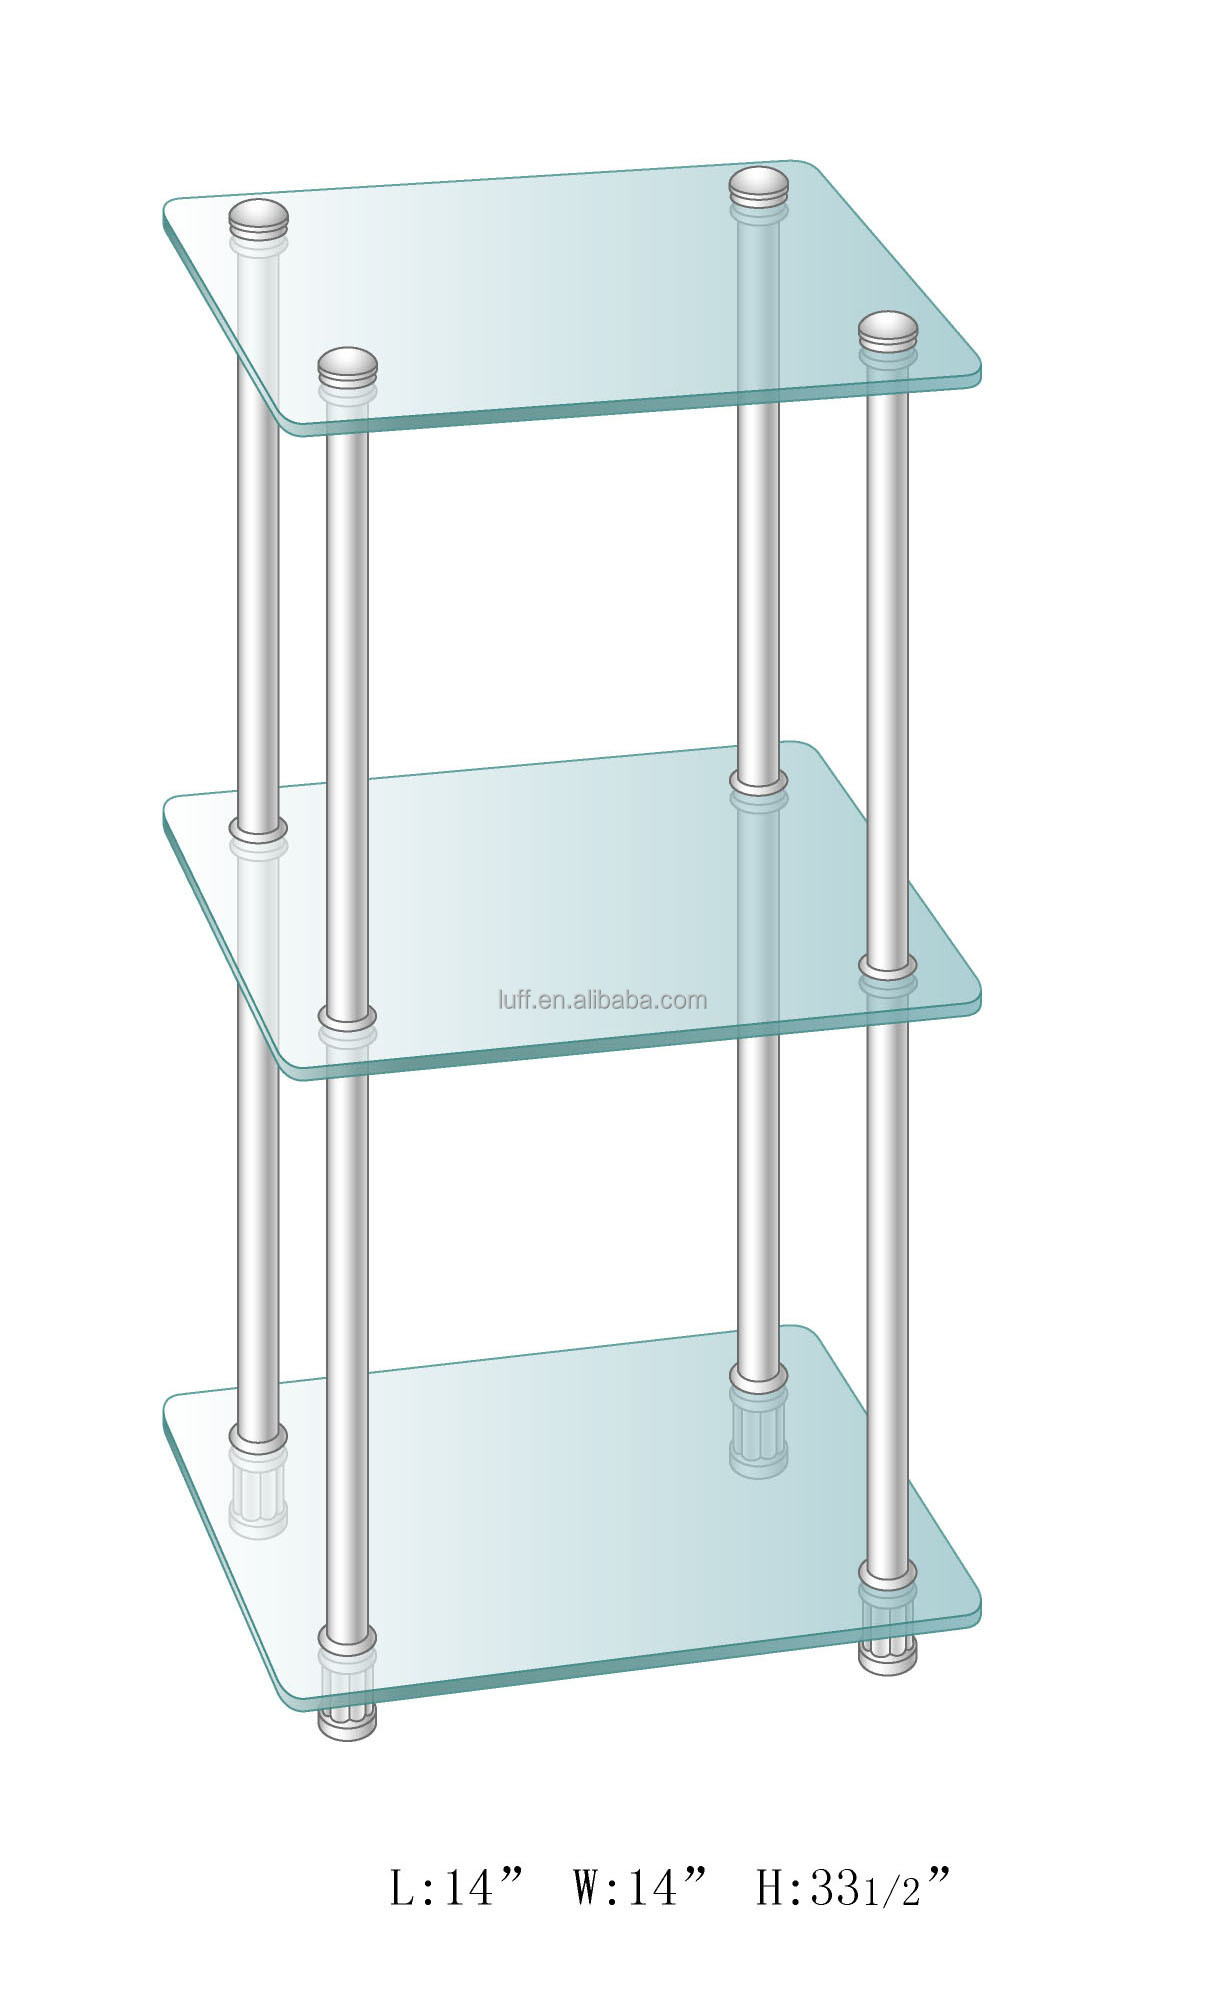 Etagere Metal Clear Tempered Glass Bathroom Storage Three Tiers Square Glass Shelves Metal Etagere Buy Metal Etagere Metal Corner Etagere Bathroom Shelf Product